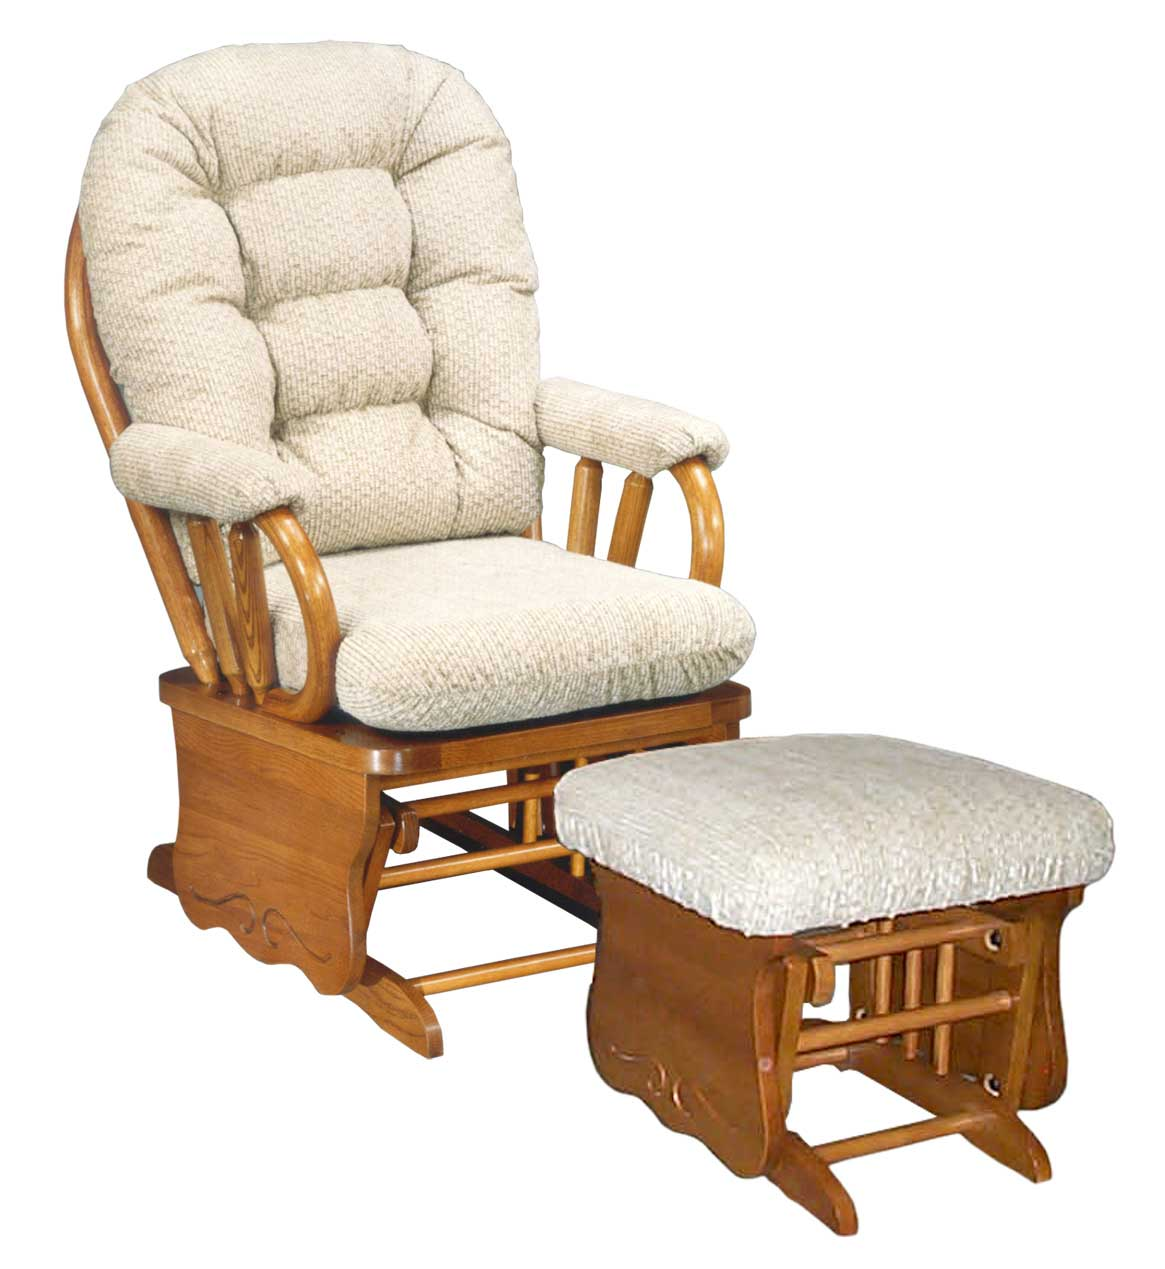 glider rocker chair cushions spider sex gliders and accent chairs jasen 39s fine furniture since 1951